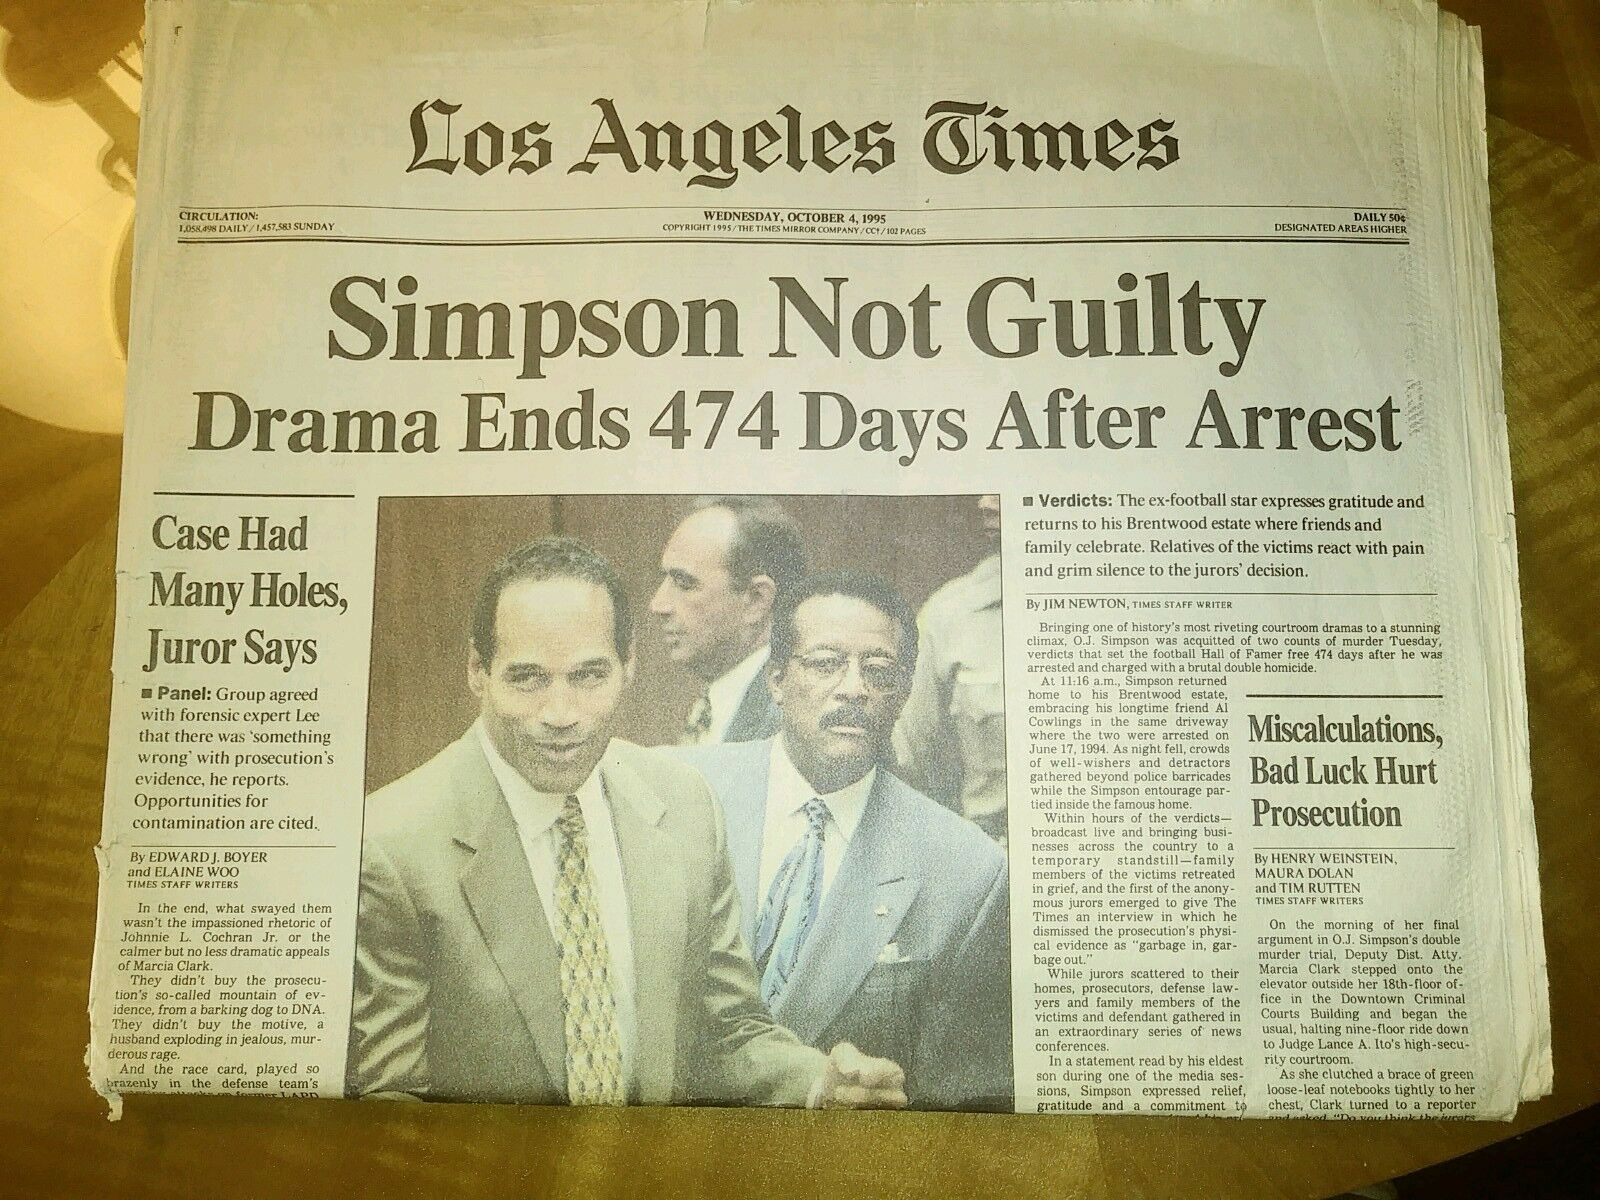 L A Times O J Simpson Not Gulty Biggest Criminal Trial Ever Oct 4 1995 Rare La Times Newspaper Hardcover Book Vintage Newspaper